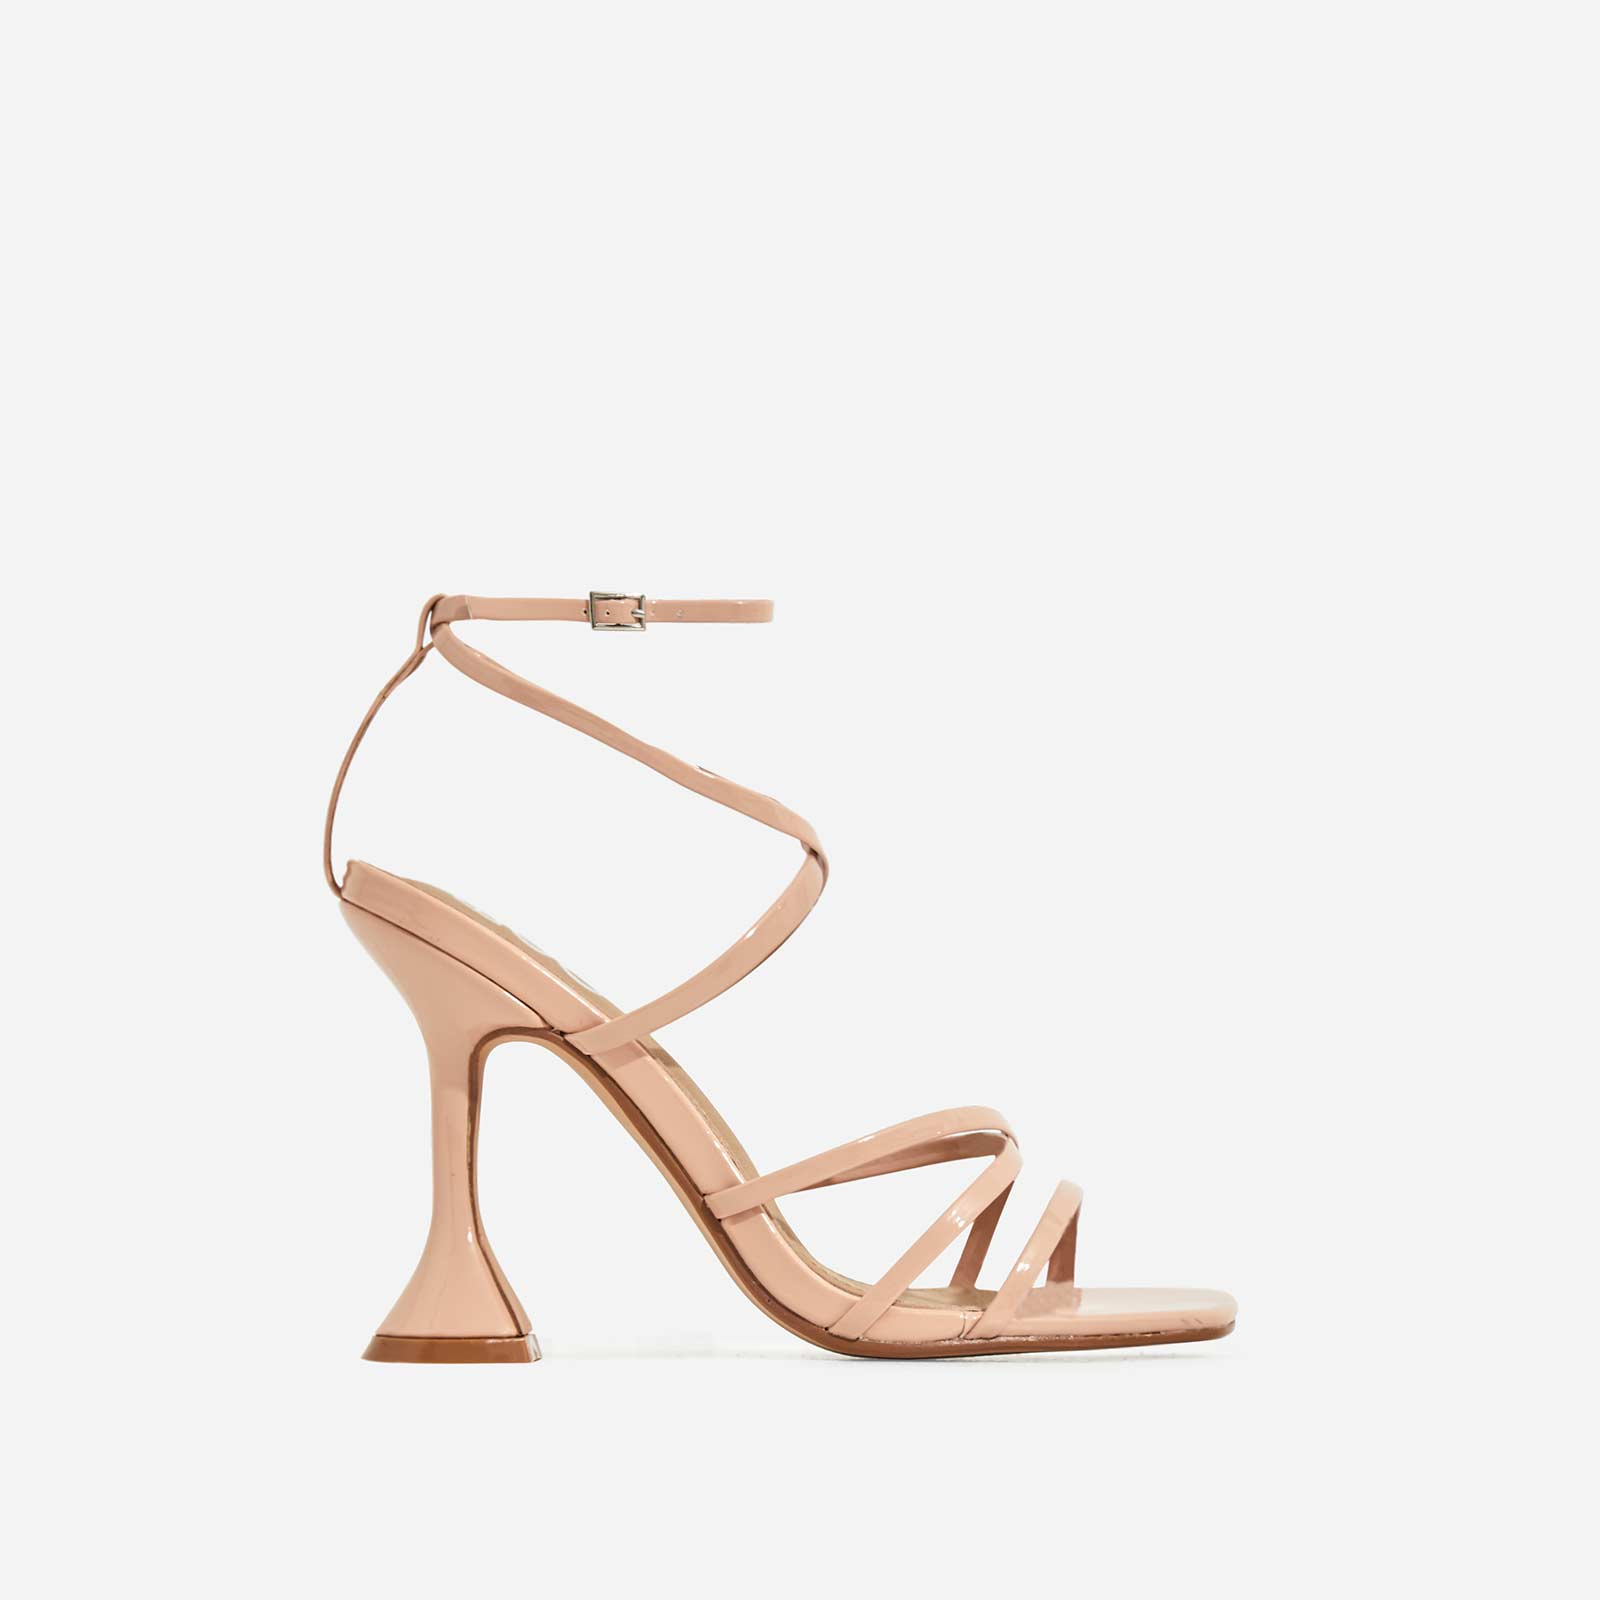 Richie Square Toe Heel In Nude Patent